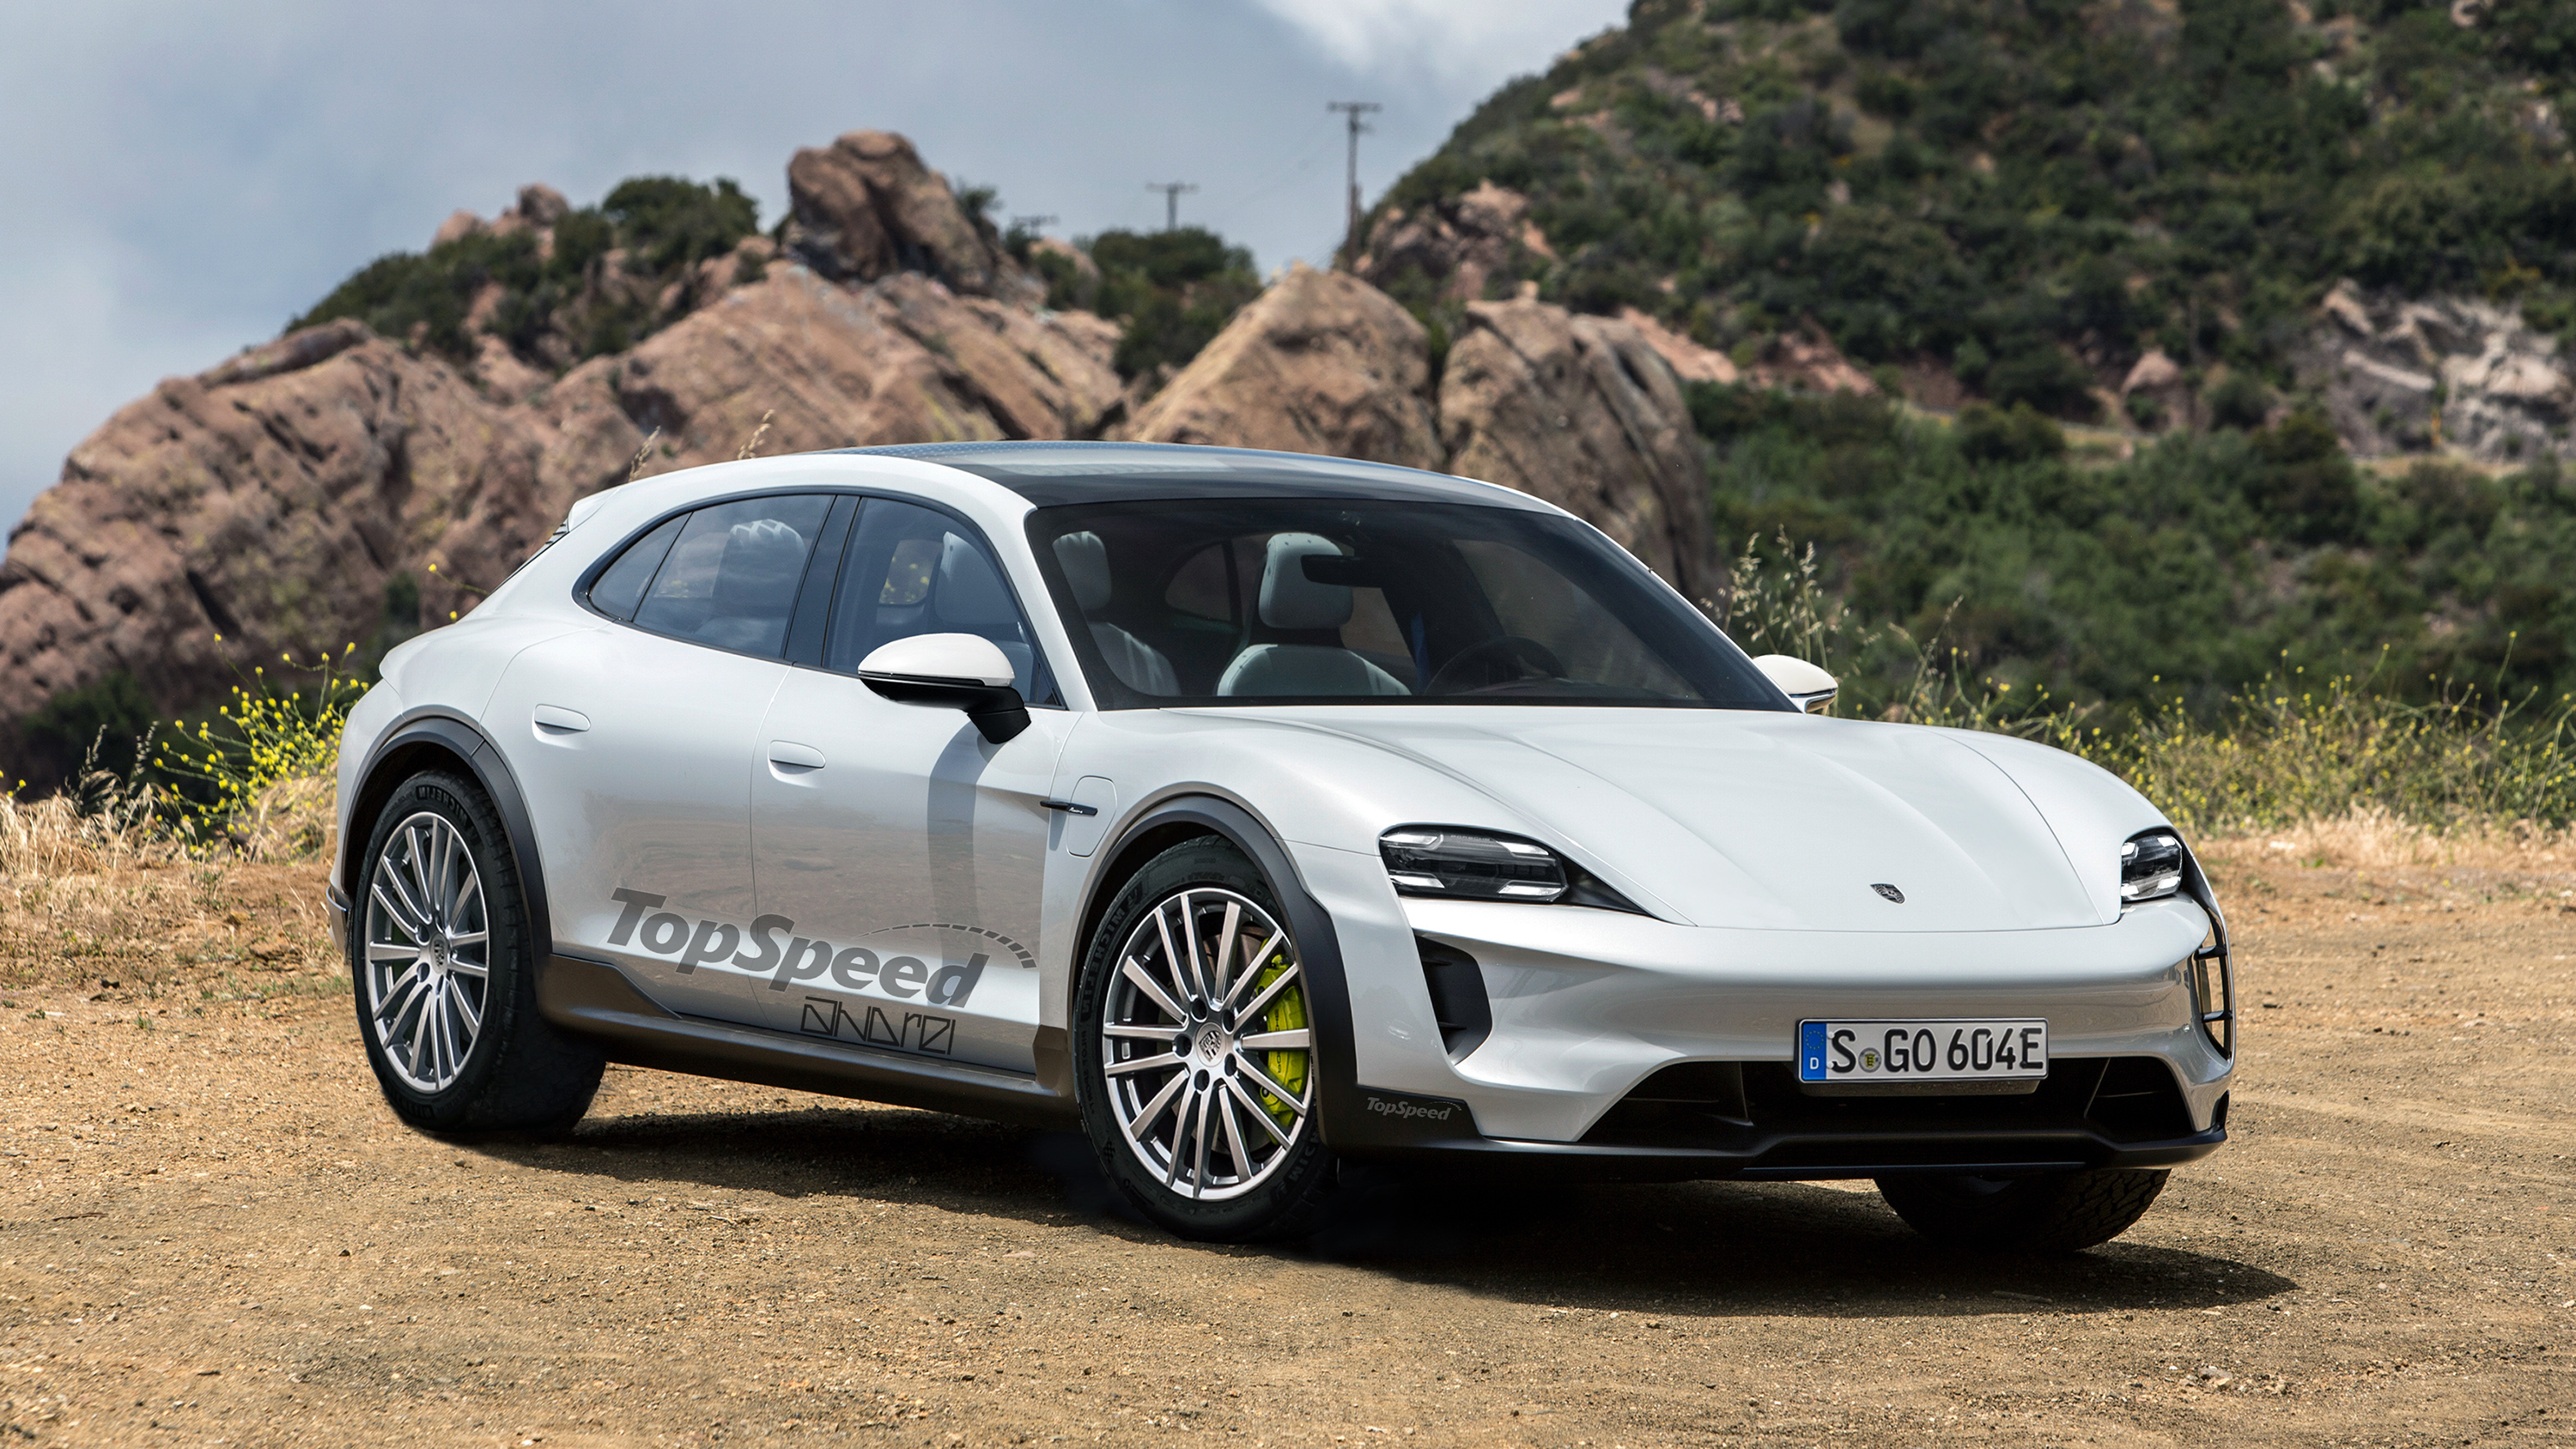 Cuv Car 2020 Porsche Taycan Cuv Top Speed